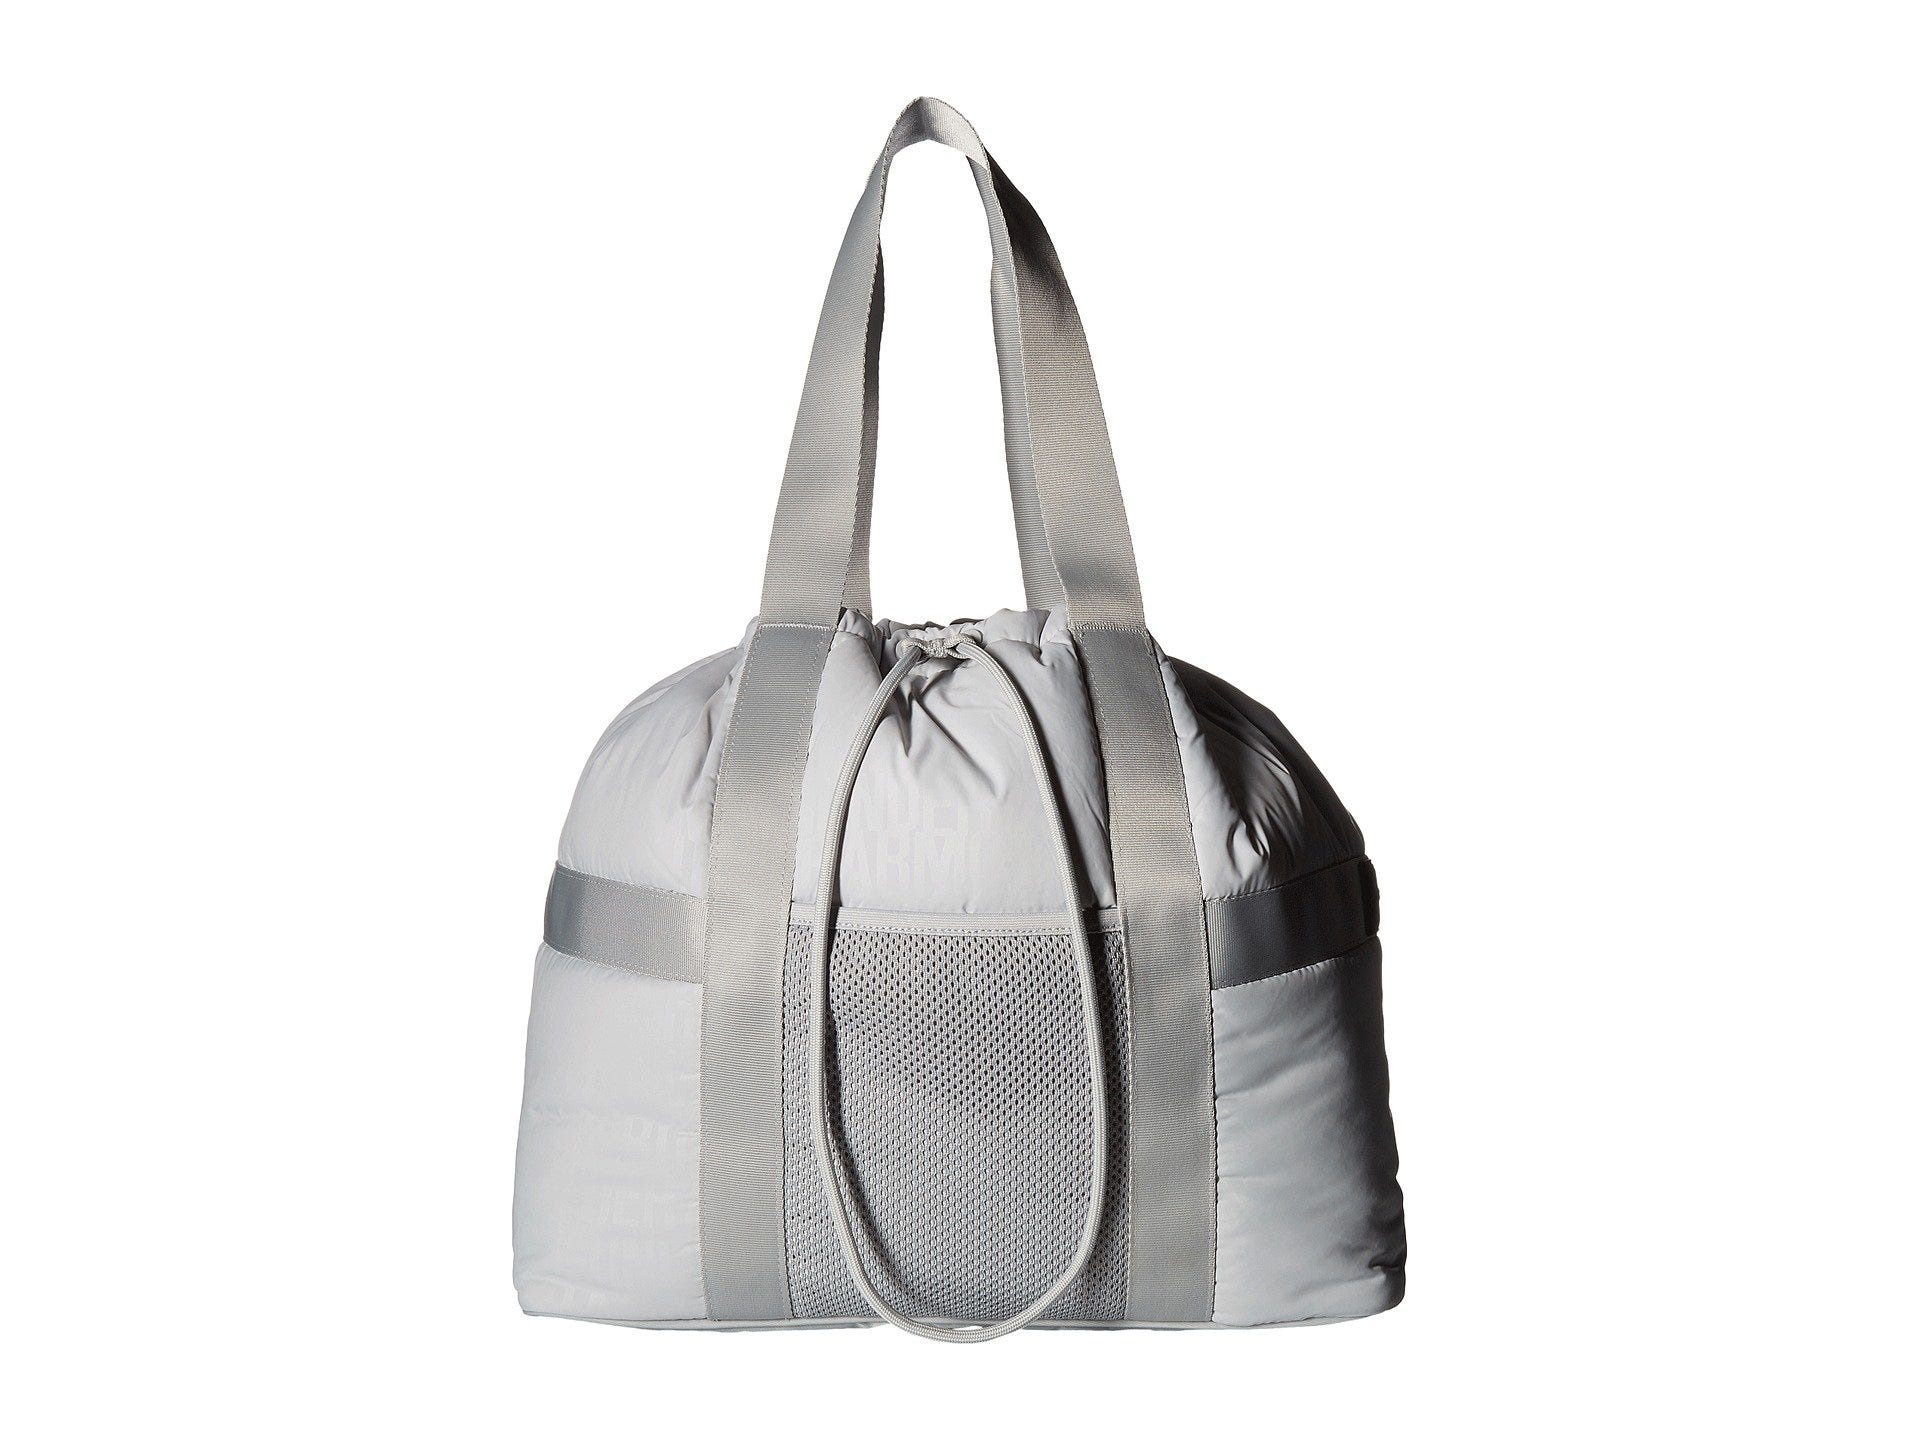 8262dab5361 Best Gym Bags For Women - Fitness Totes